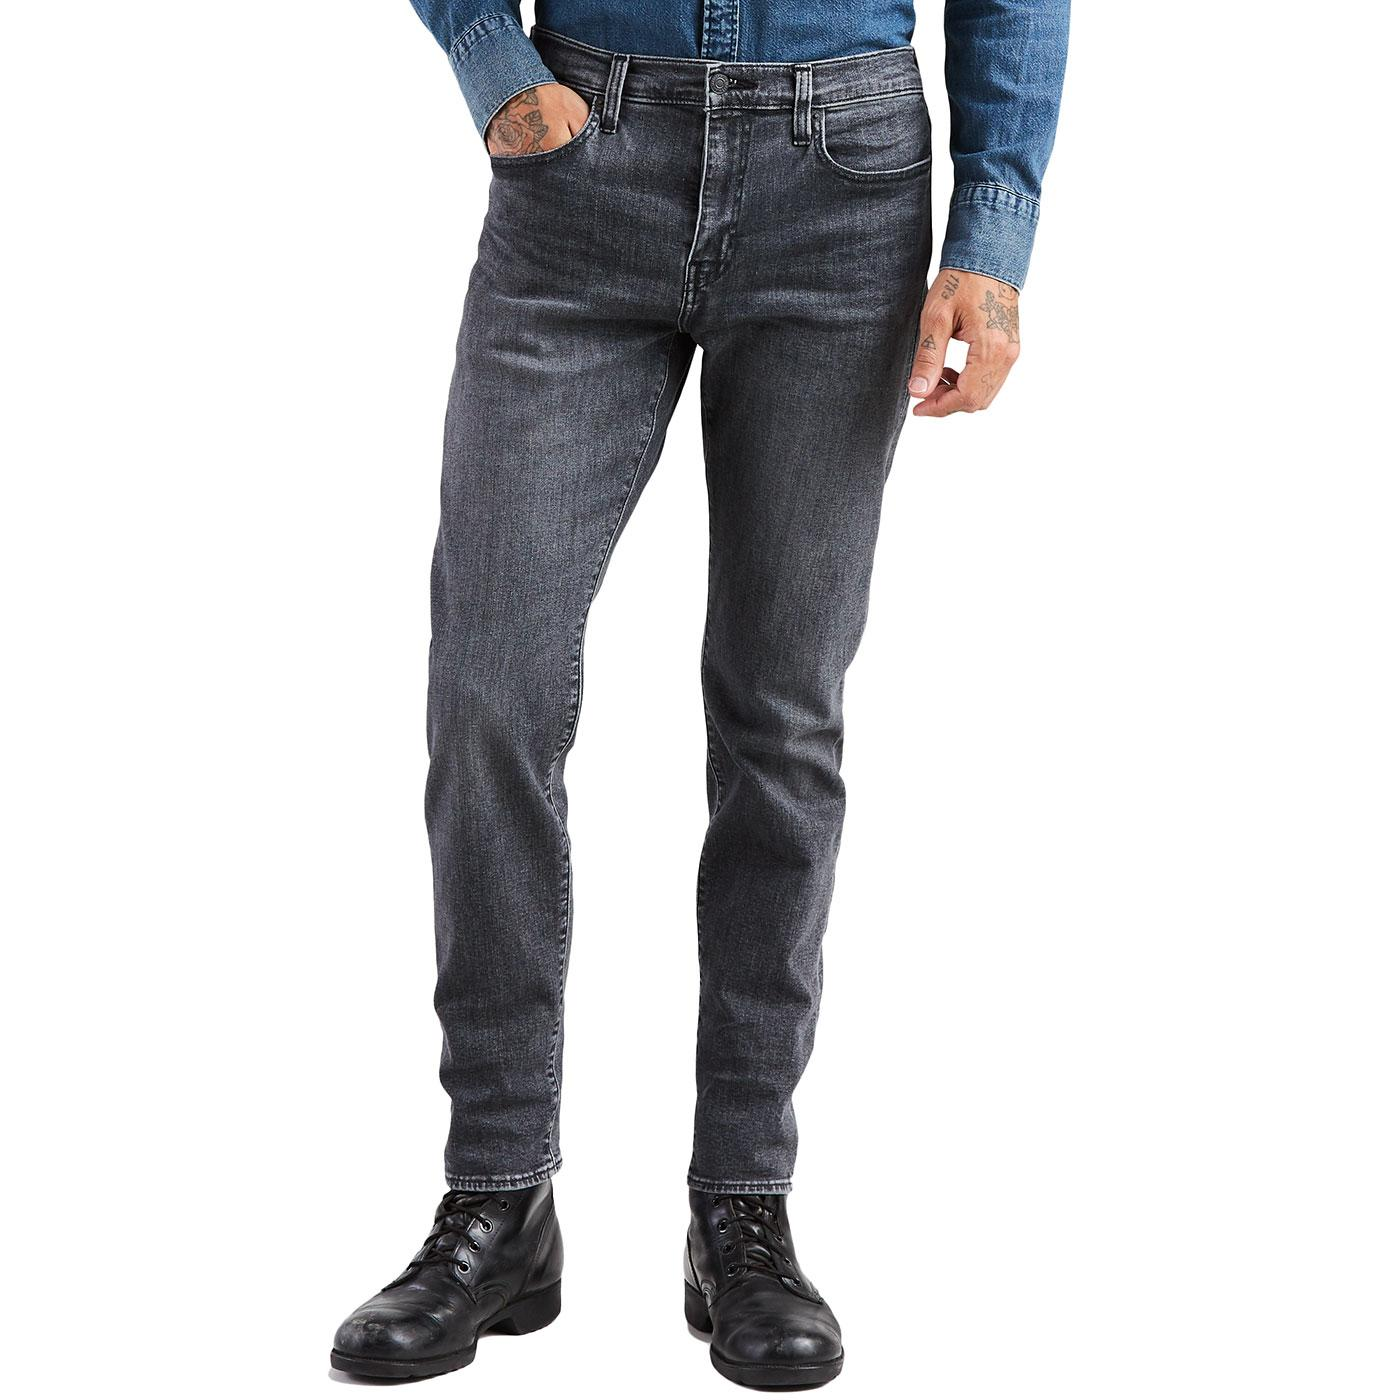 LEVI'S 502 Regular Taper Retro Jeans (Gobbler Adv)